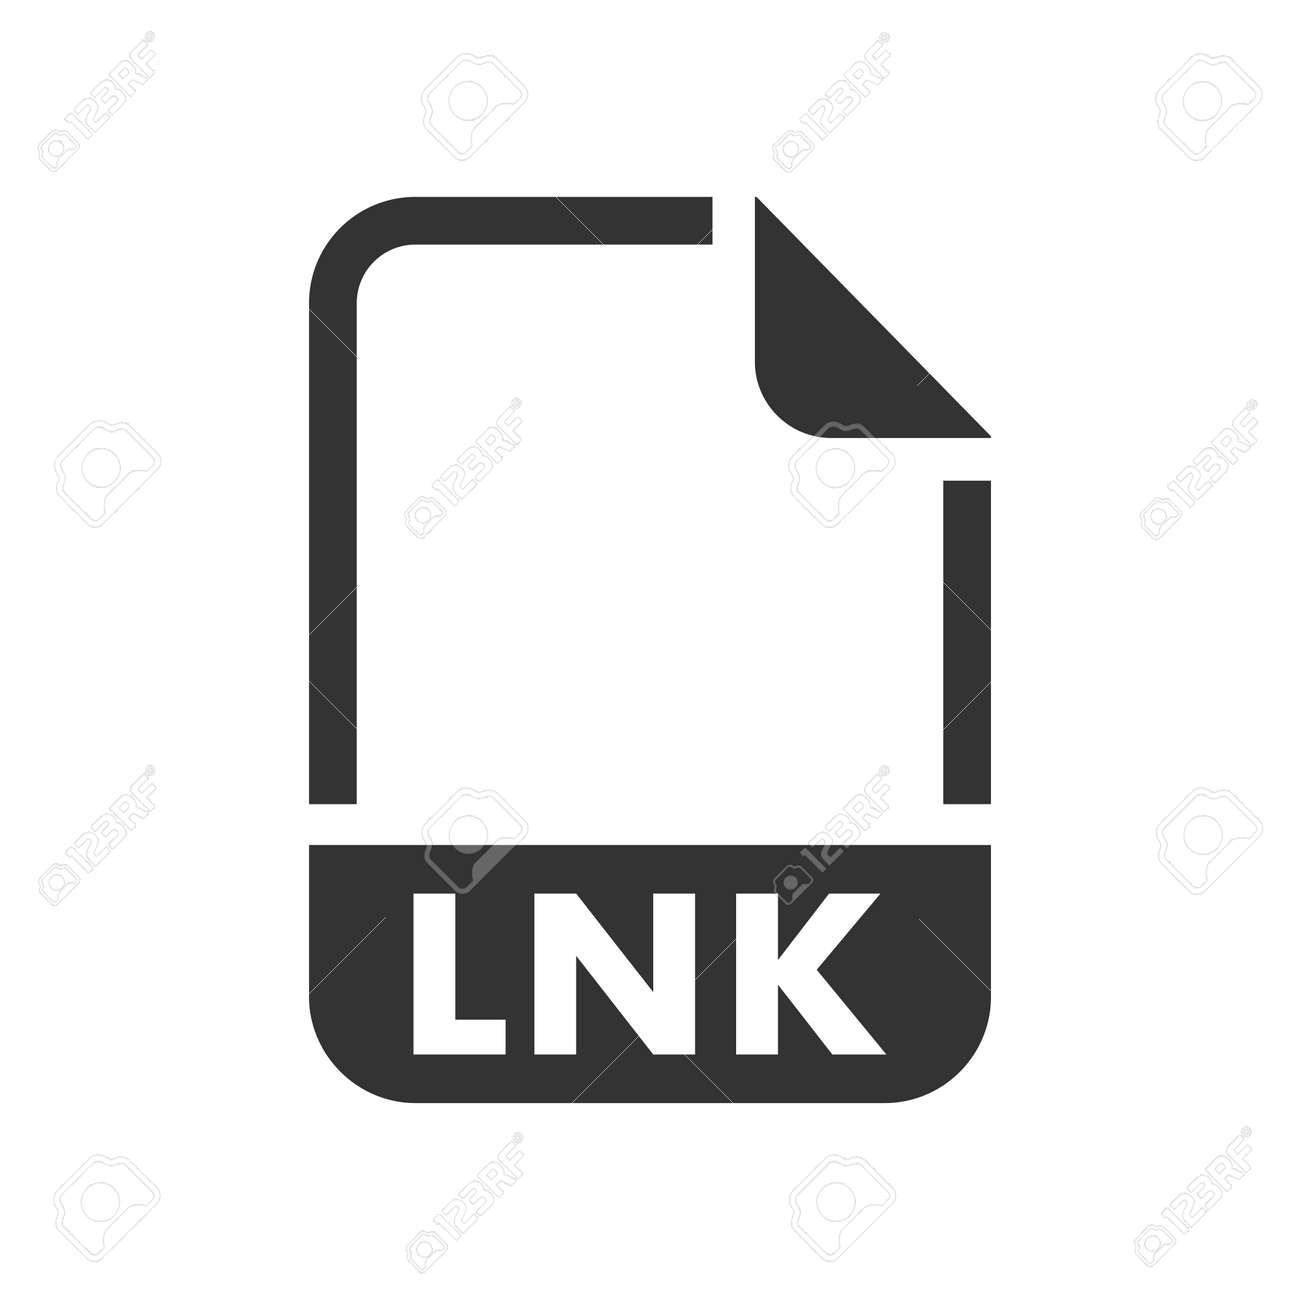 LNK File format icon, vector image - 159135635